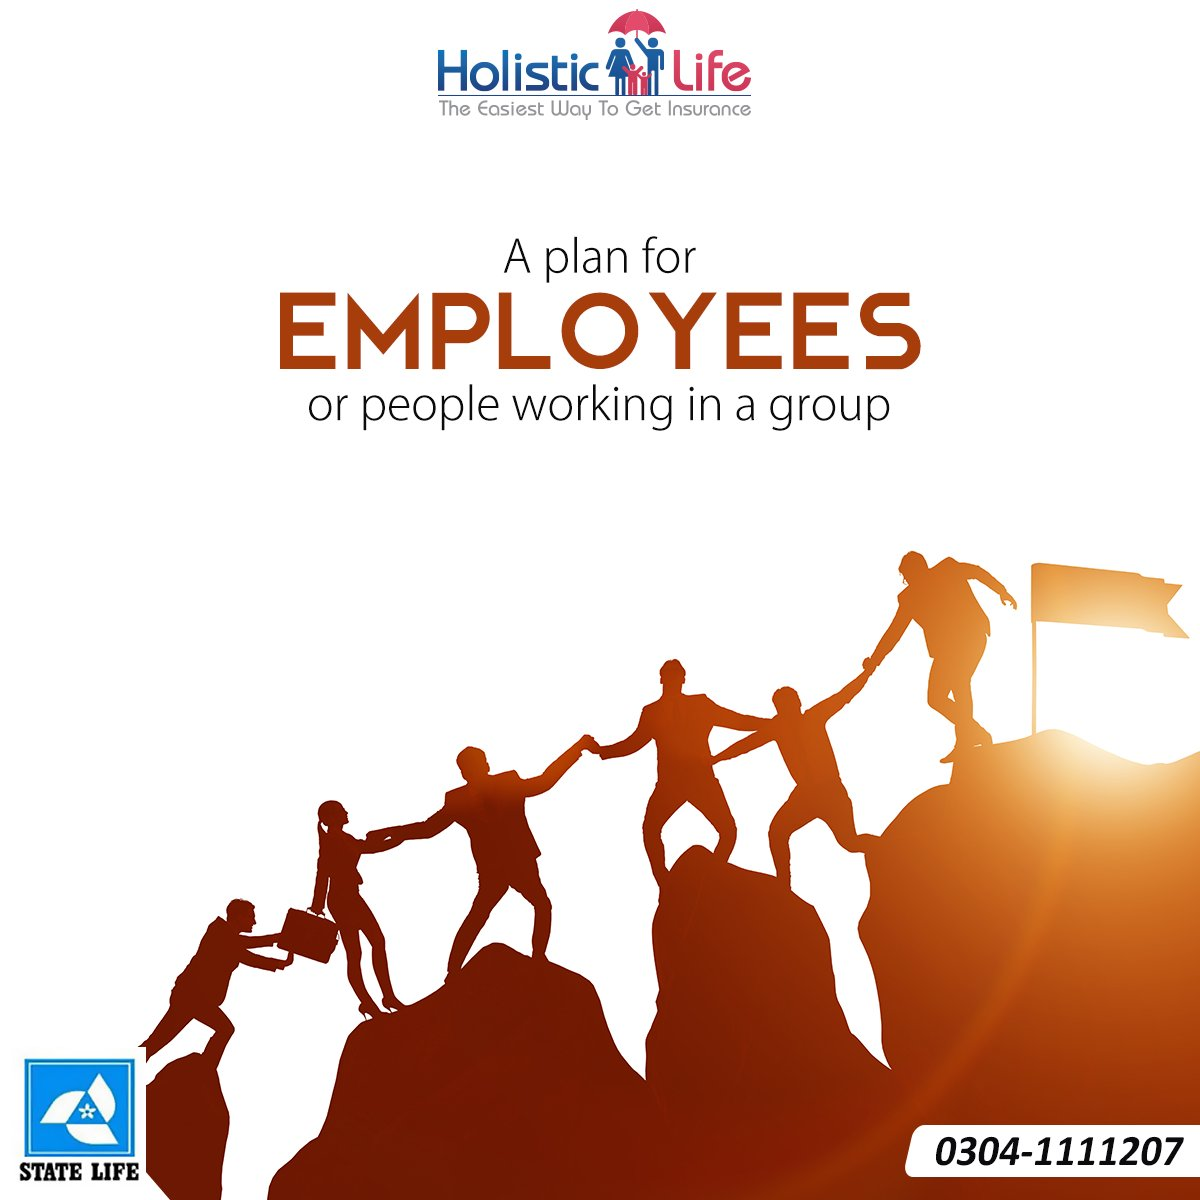 If you are working in a factory or employee of any company then, we have a group insurance plan for all employees that will help you in the future.  Contact us: 03041111207 Website: http://www.holisticlife.com.pk   #insurance #lifeinsurance #insurancecoverage #insuranceclaims pic.twitter.com/vtNm7OZvey